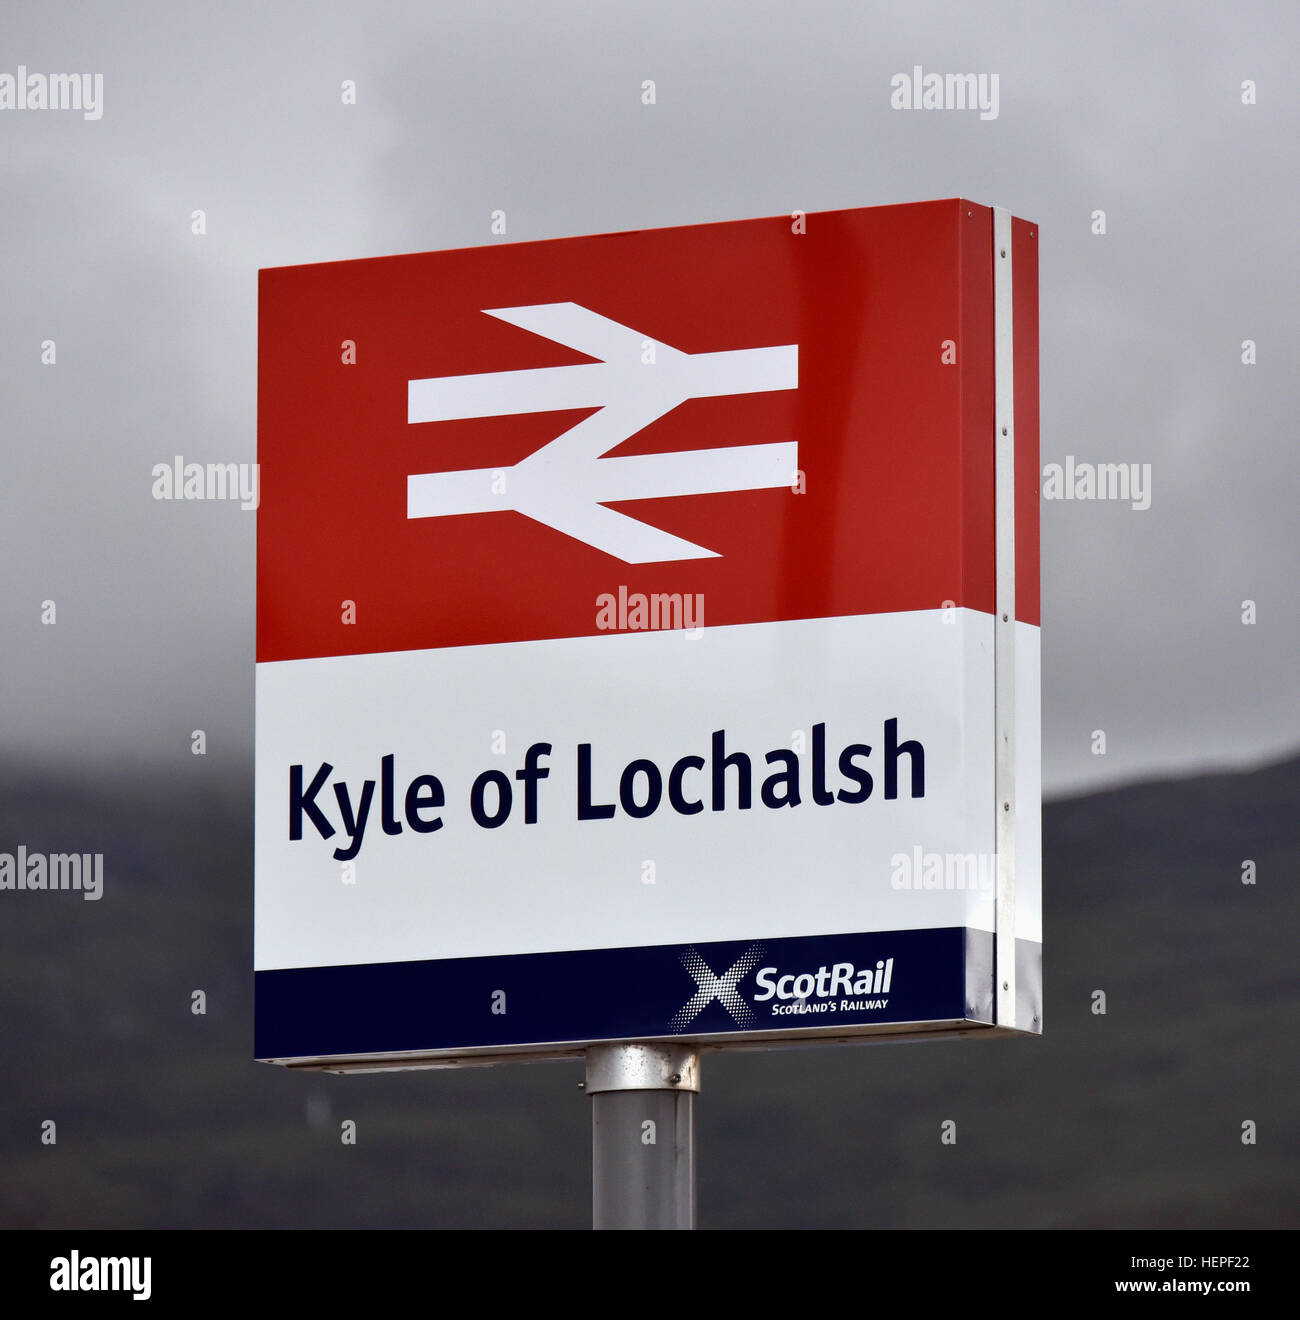 Kyle of Lochalsh Scotrail station sign. - Stock Image